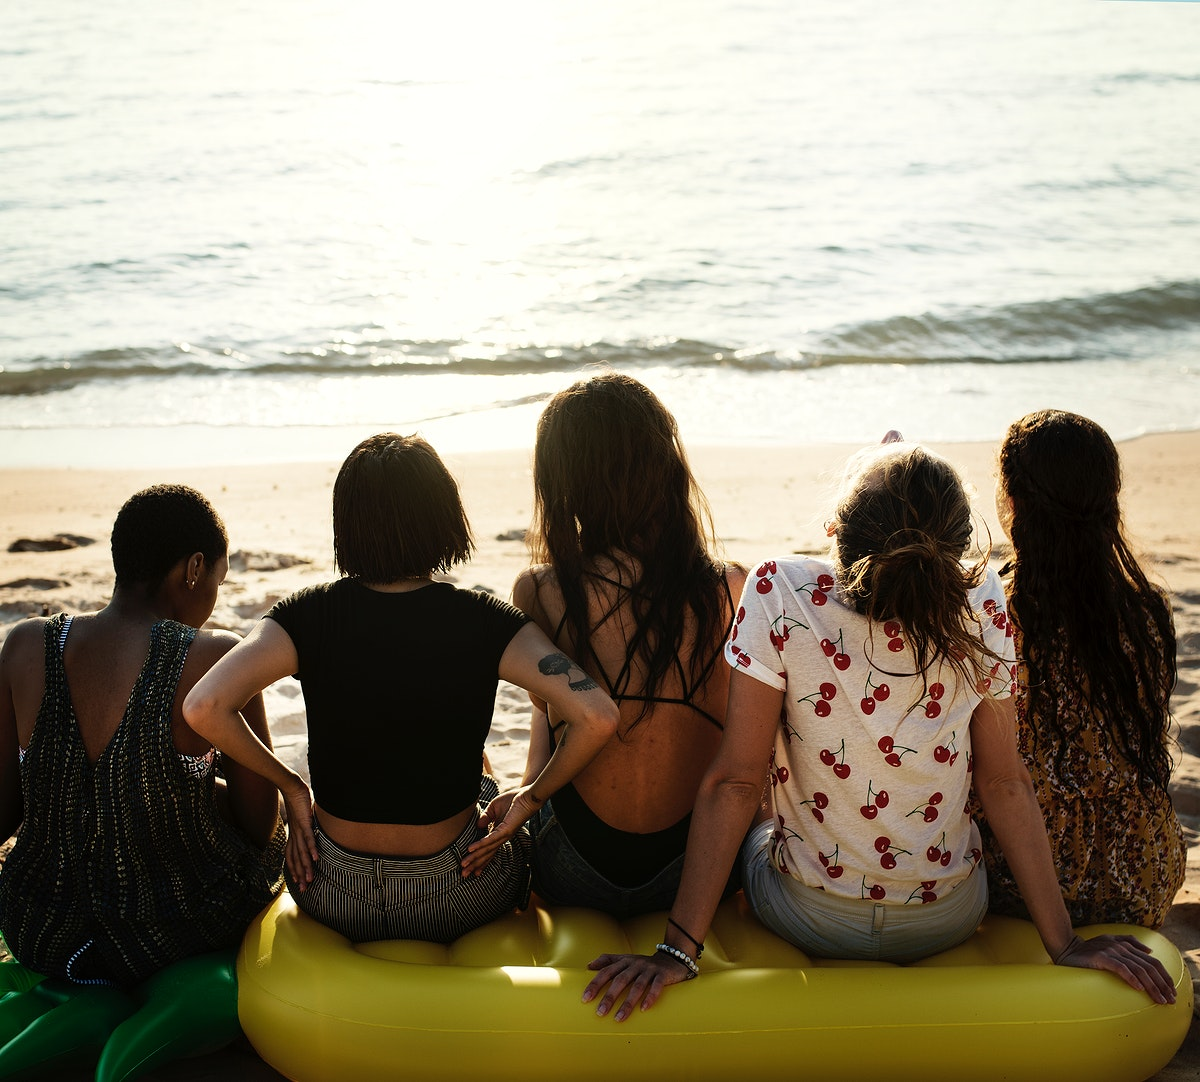 A diverse group of woman friends sitting at the beach together